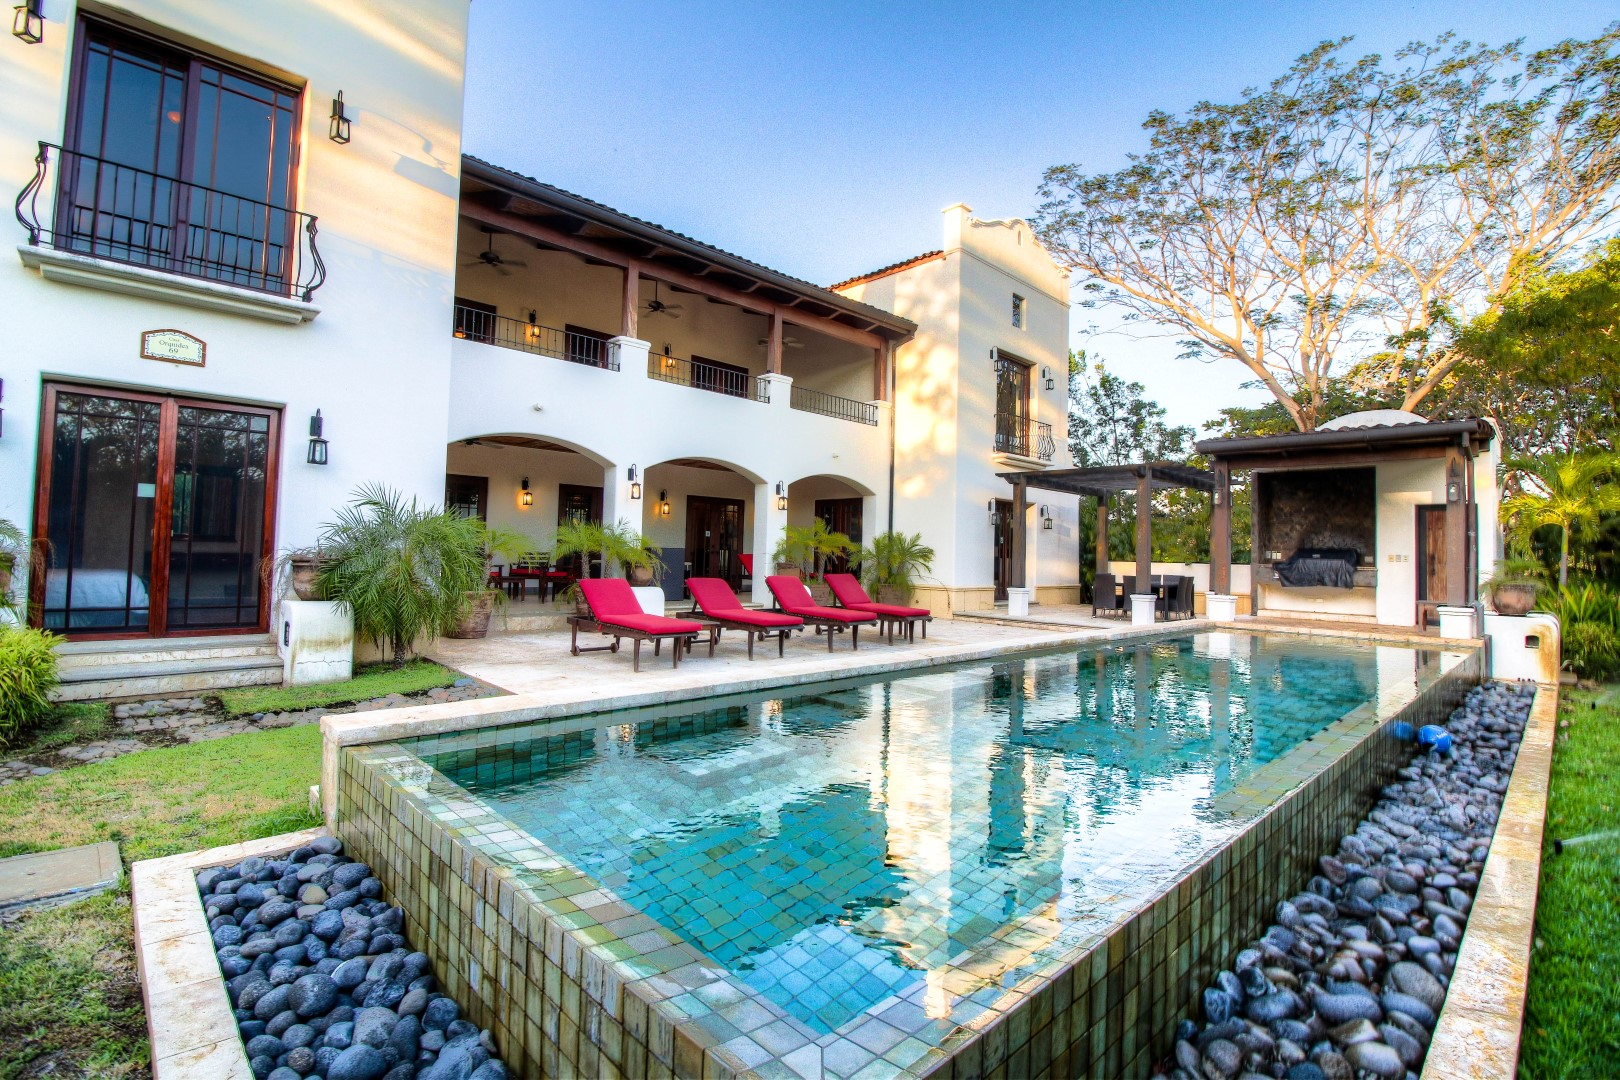 Infinity Pool, Lounge Chairs and BBQ for a complete outdoor expe